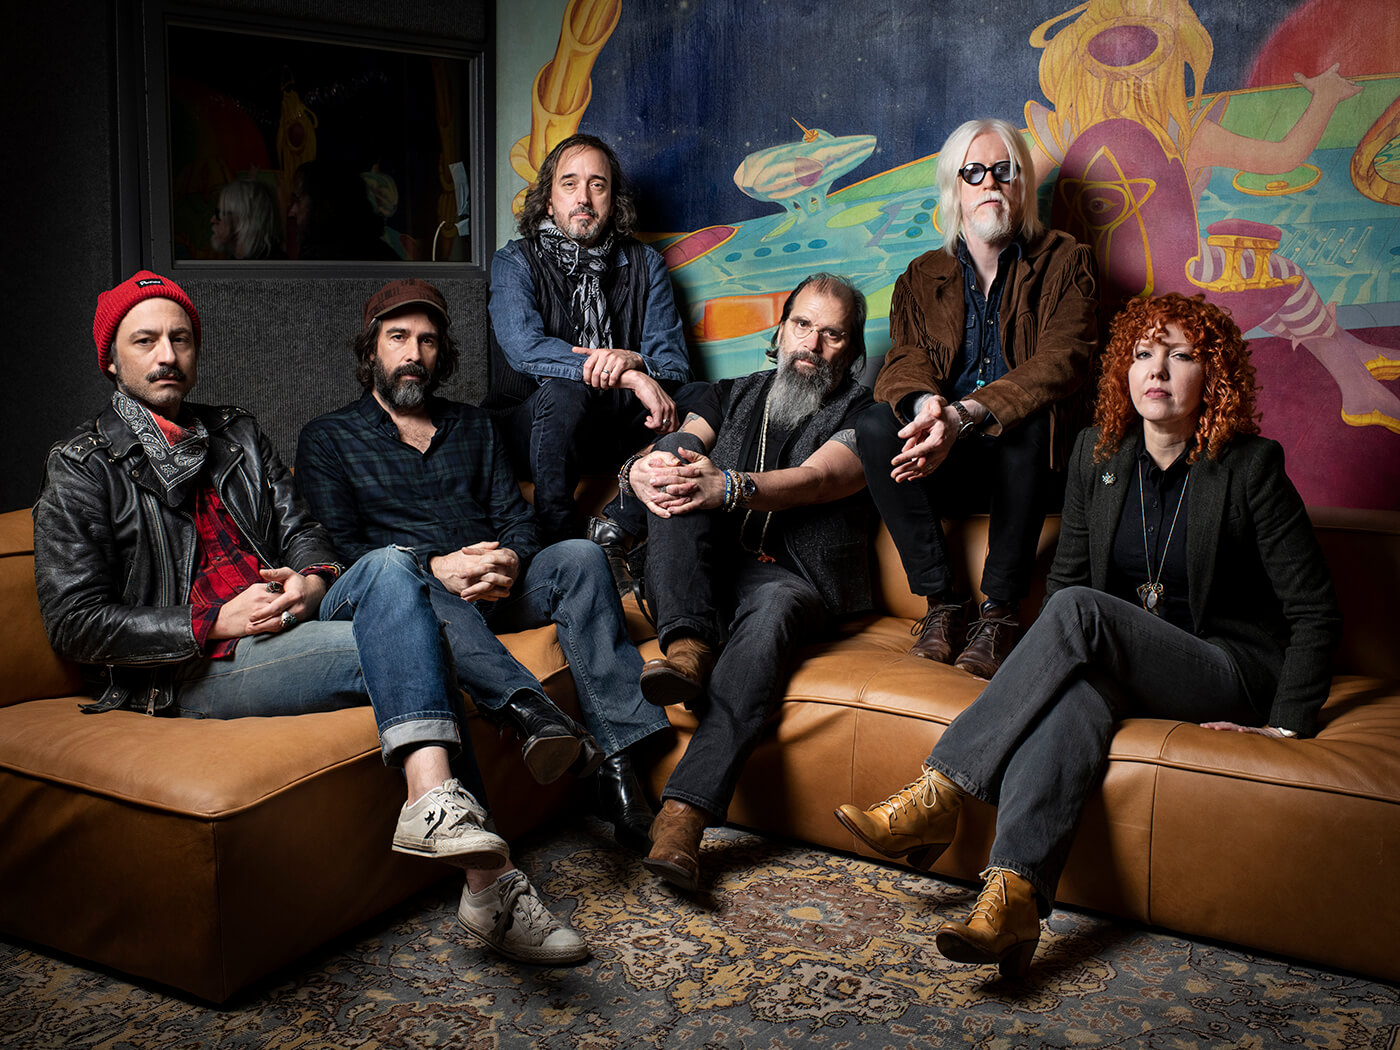 Steve Earle & The Dukes announce new album, Ghosts Of West Virginia